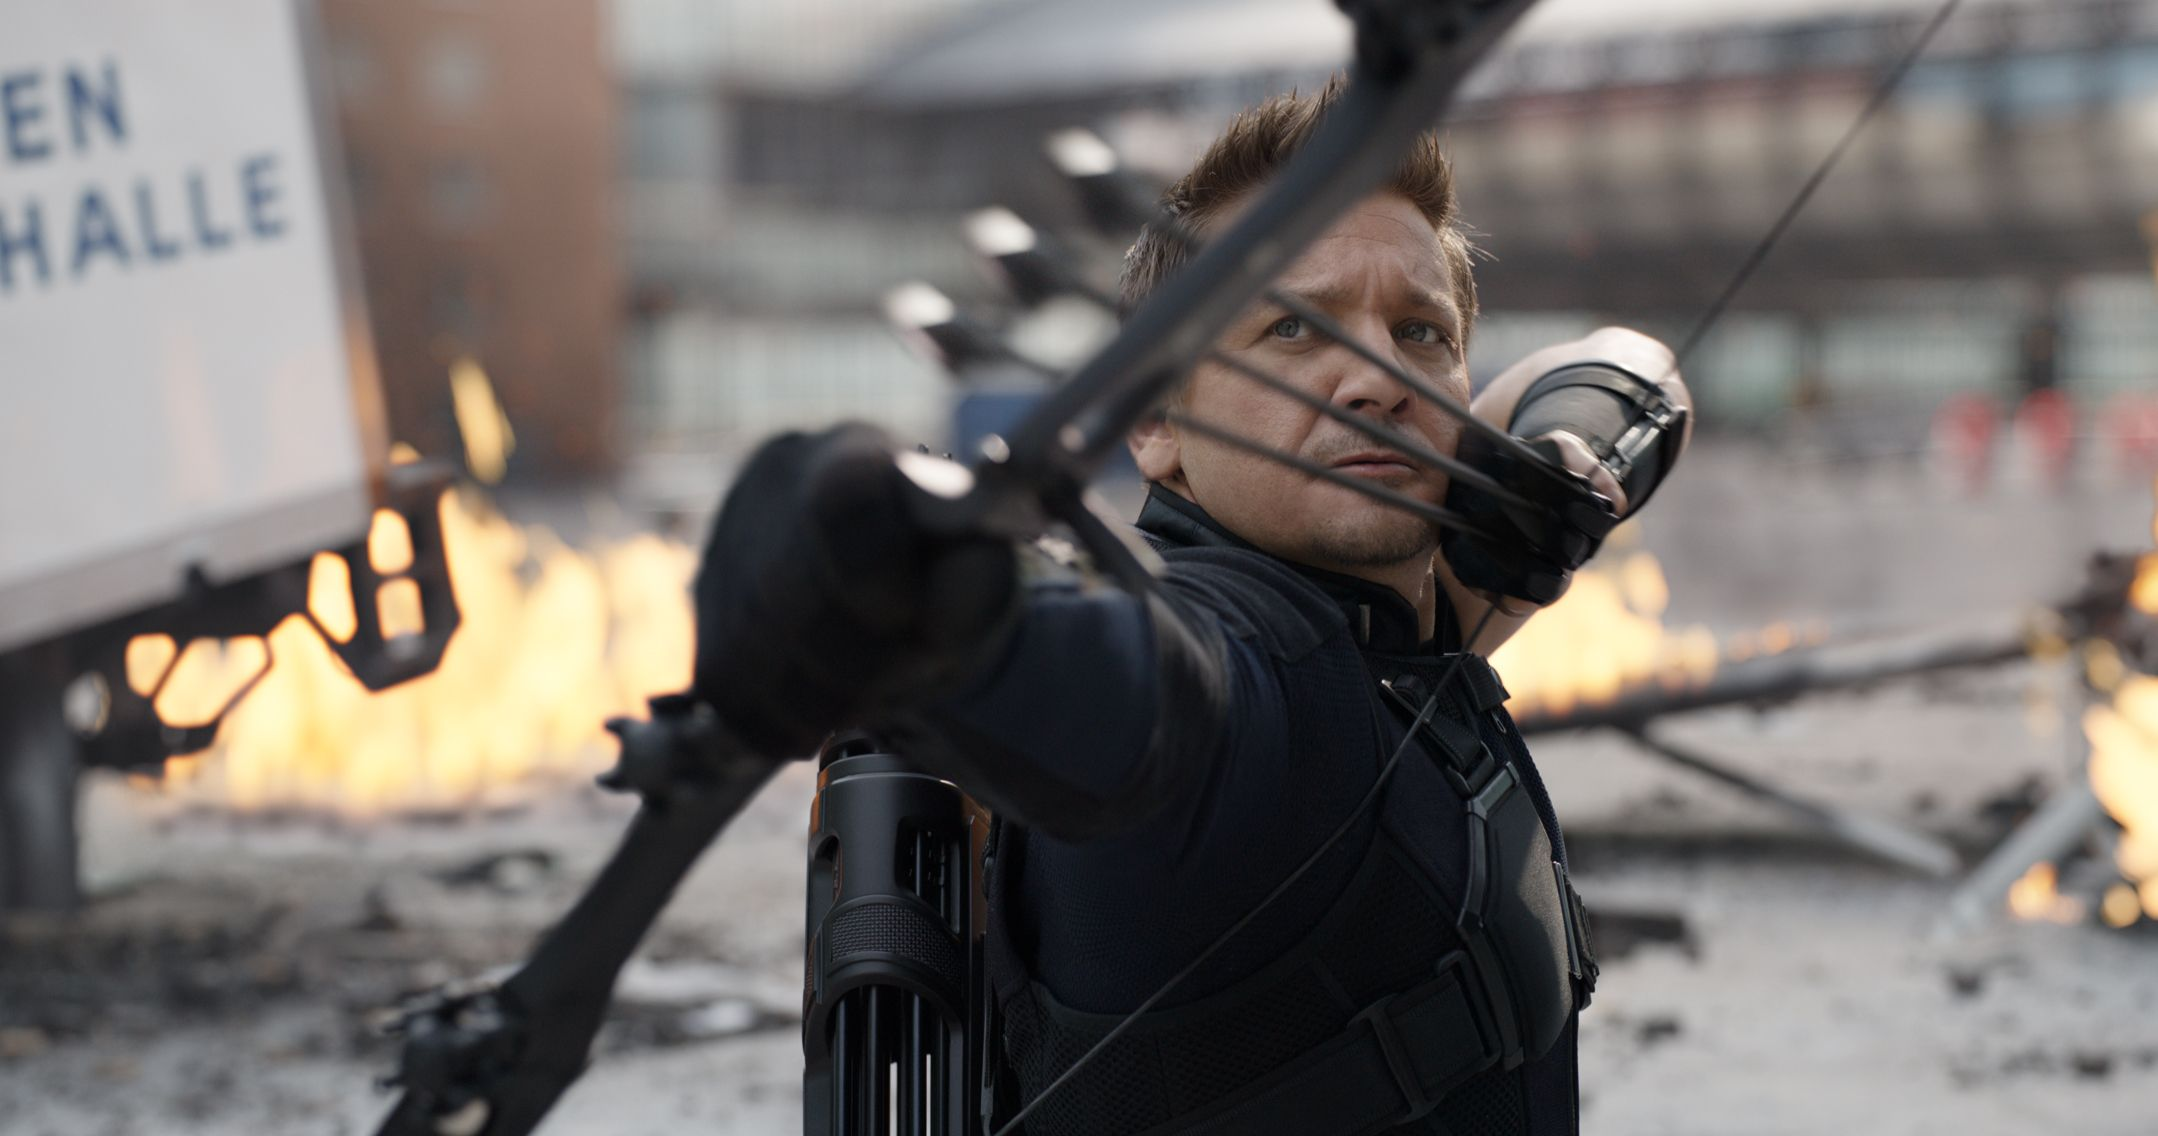 Captain America: Civil War – Hawkeye could have had a classically bad costume